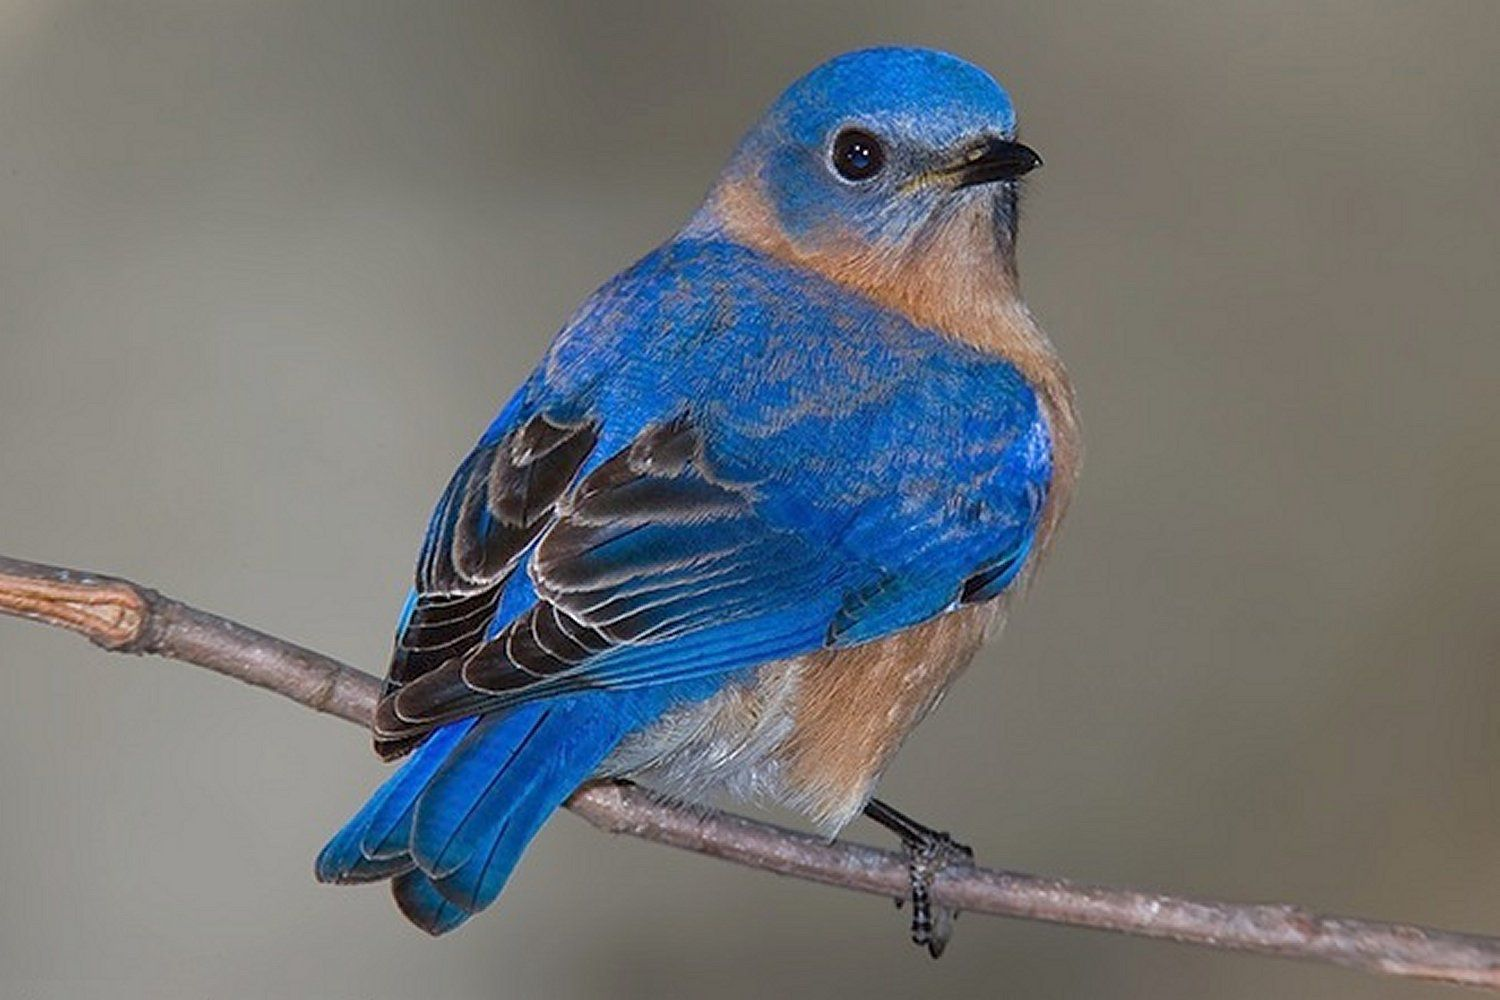 Eastern Bluebird, the state bird of New York, standing on a tree branch.